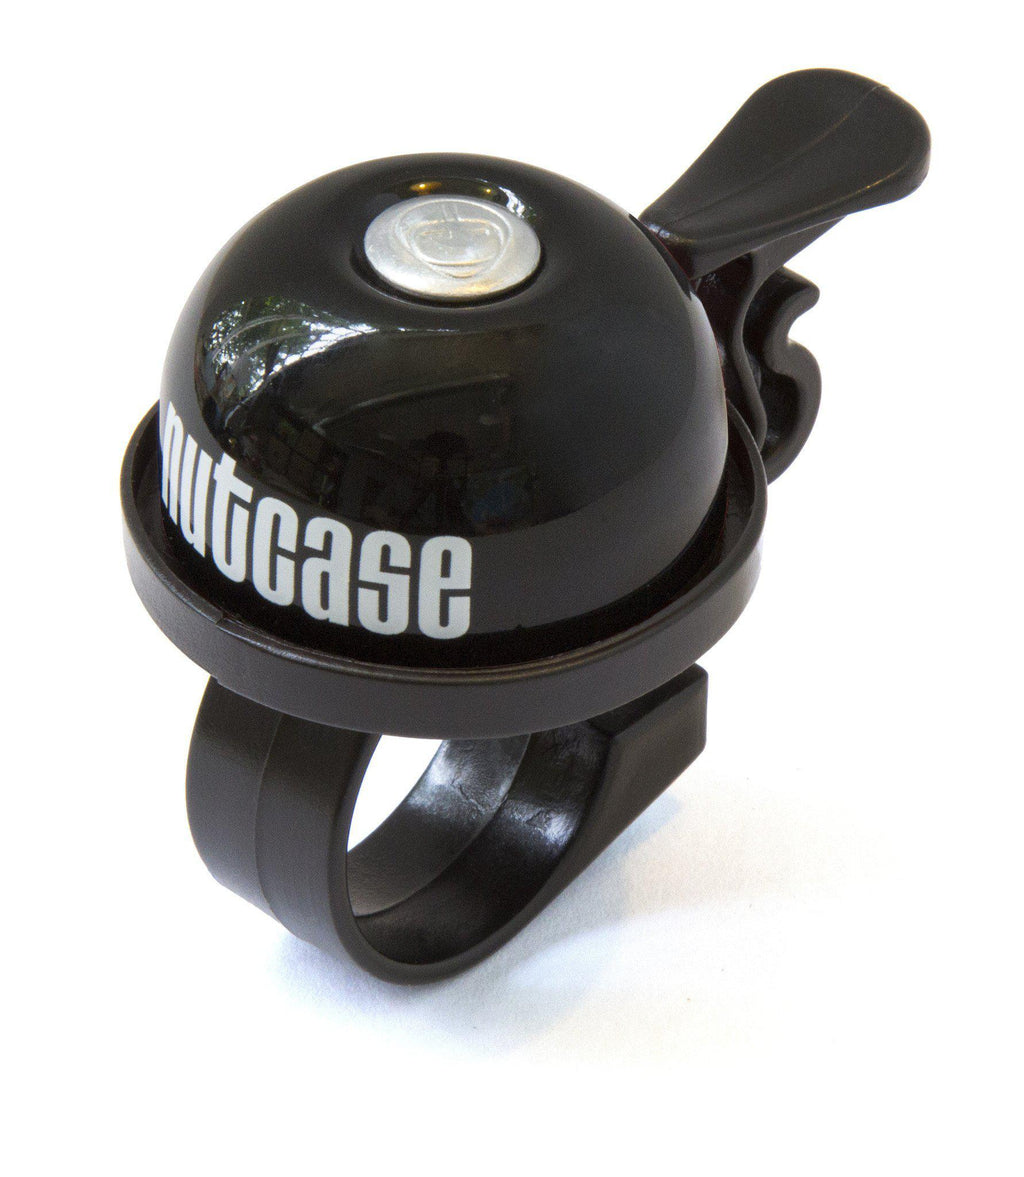 Nutcase Bicycle Bell - Thumbdinger